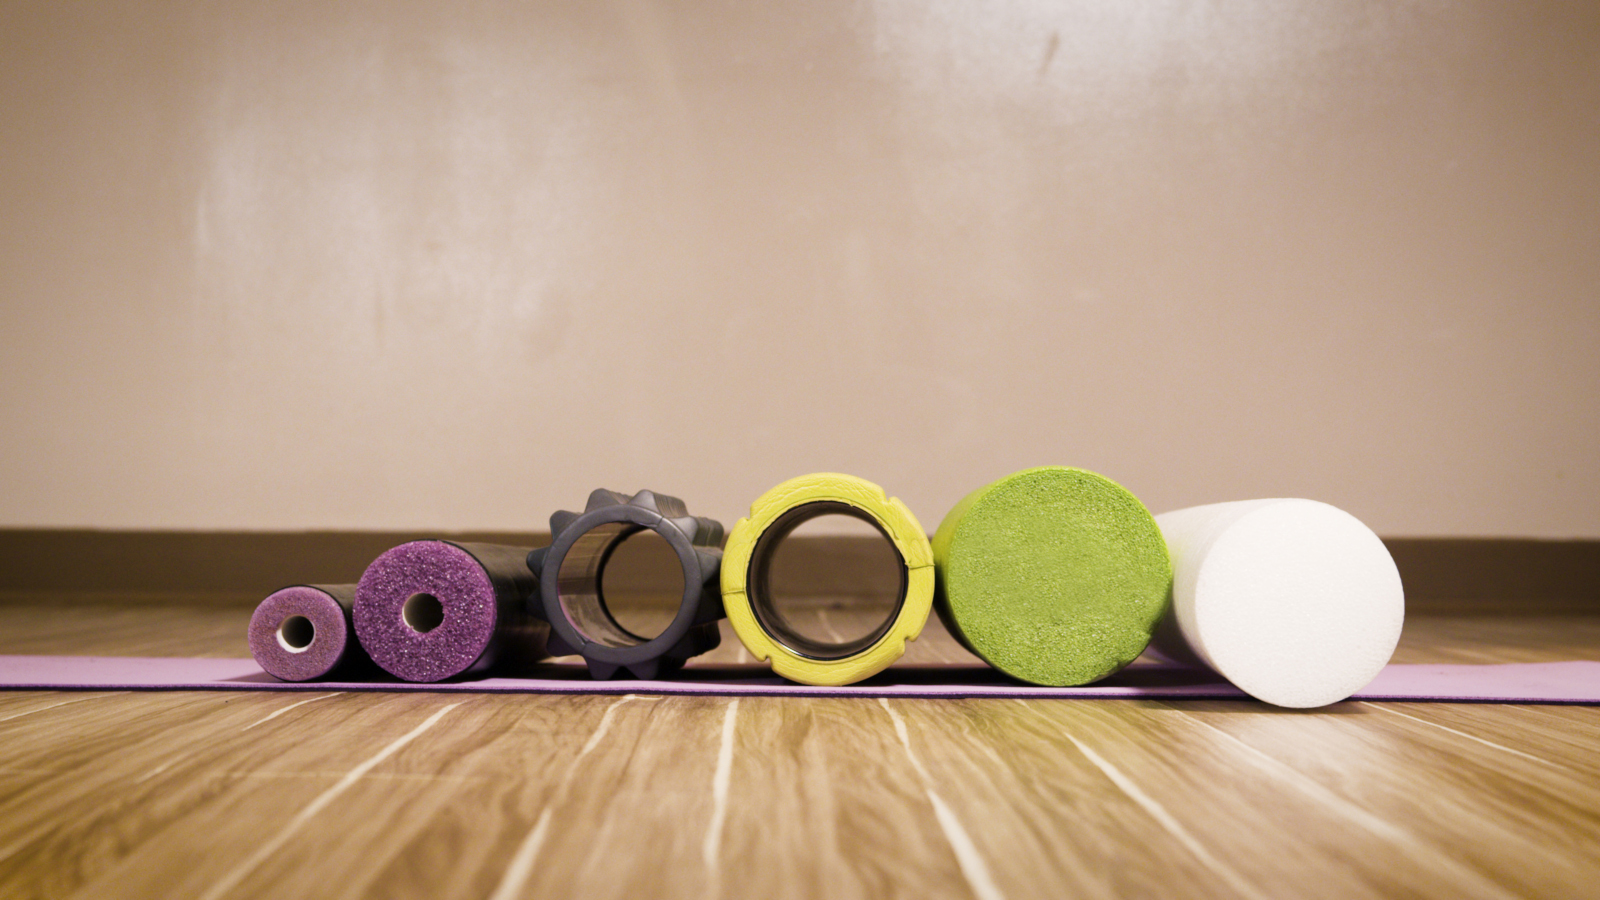 Comparison photo of different foam rollers from the front